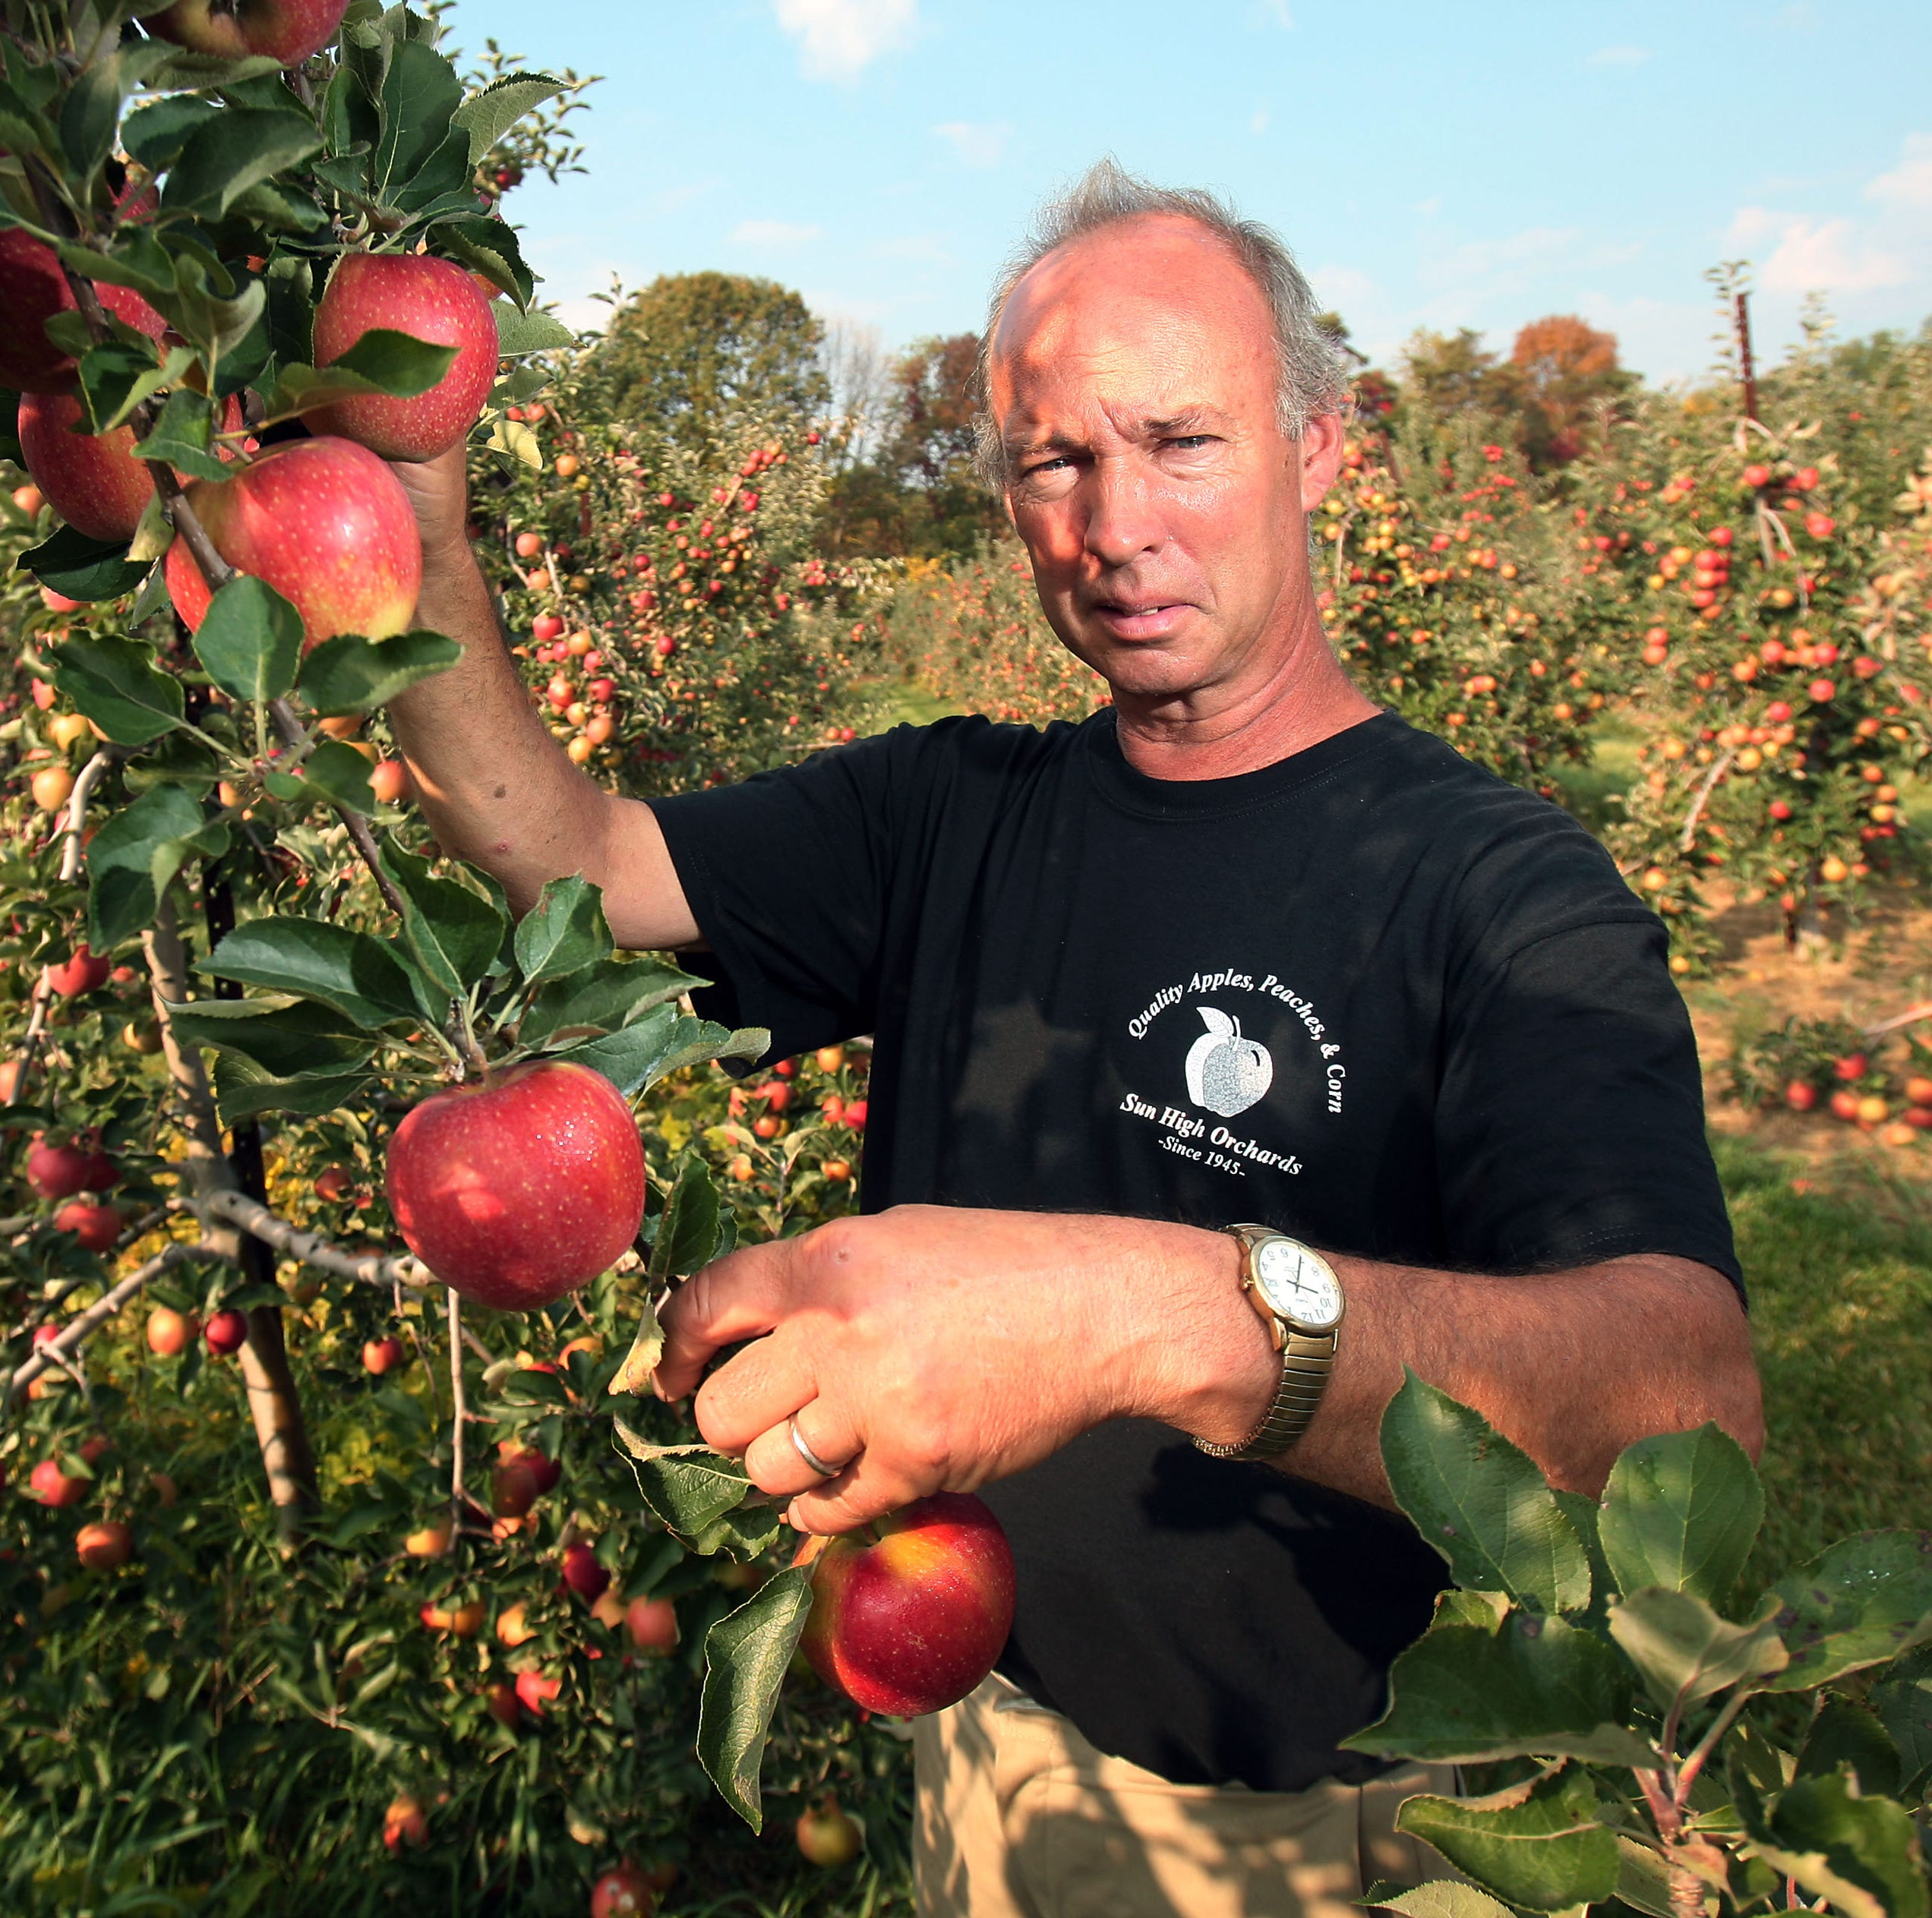 Randolph orchard bustling despite manager's arrest for groping teens